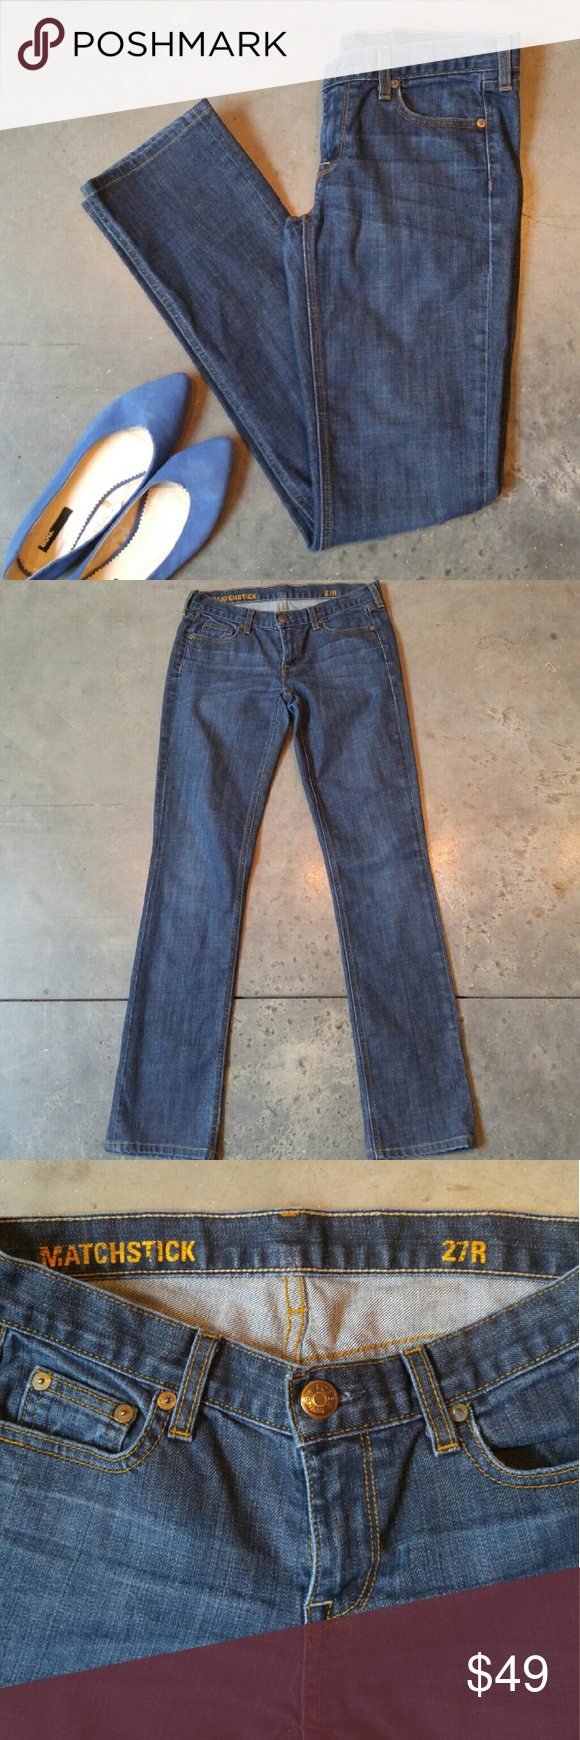 J. Crew Matchstick Denim Jeans J. Crew jeans, size 27 regular, in perfect condition! These are like new! Style is matchstick and the denim is a medium wash. Has front and back pockets. Leg fit is more like a straight leg and less like a skinny leg. Please ask any questions. No trades. Make a reasonable offer. Thanks! *Cover photo shoes not included* J. Crew Jeans Straight Leg